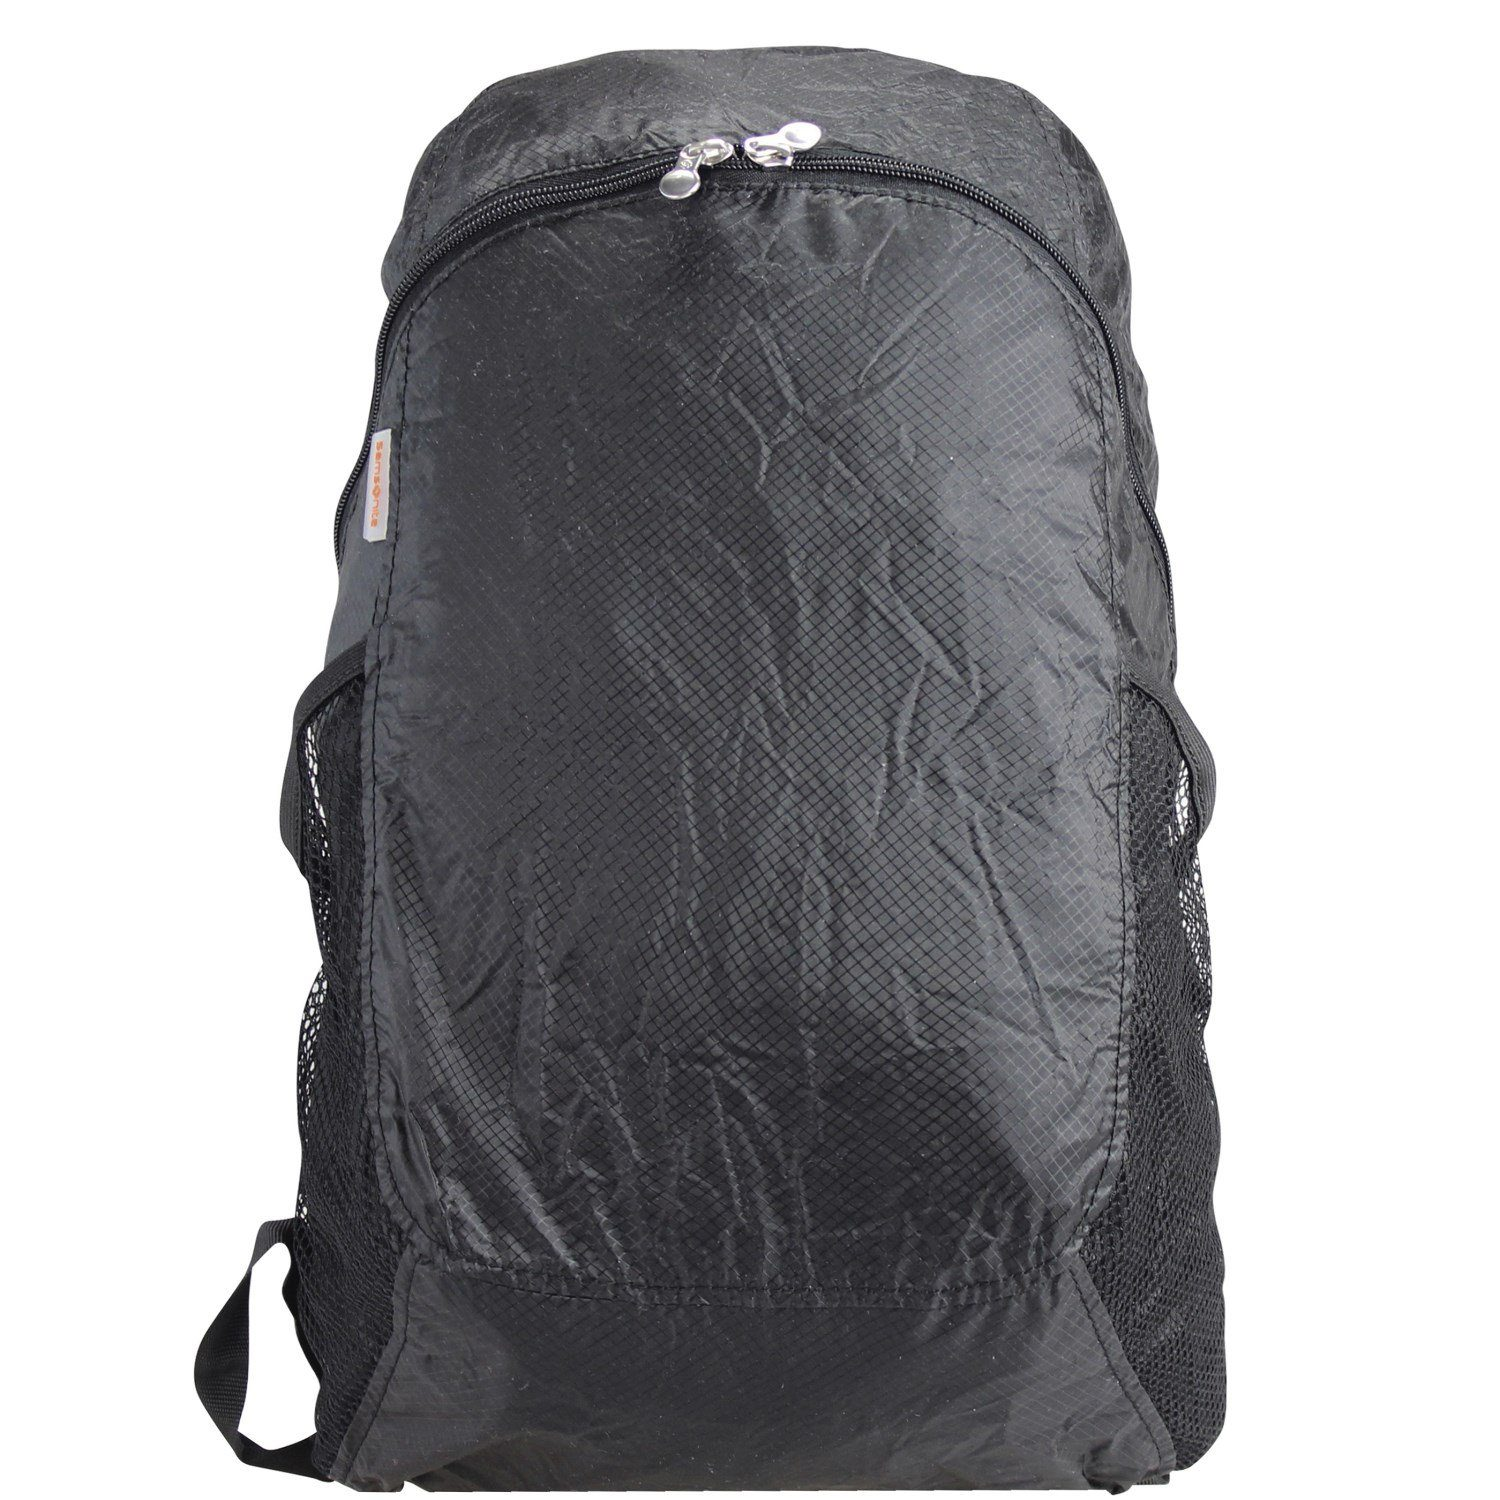 Samsonite Travel Accessories Rucksack 43 cm